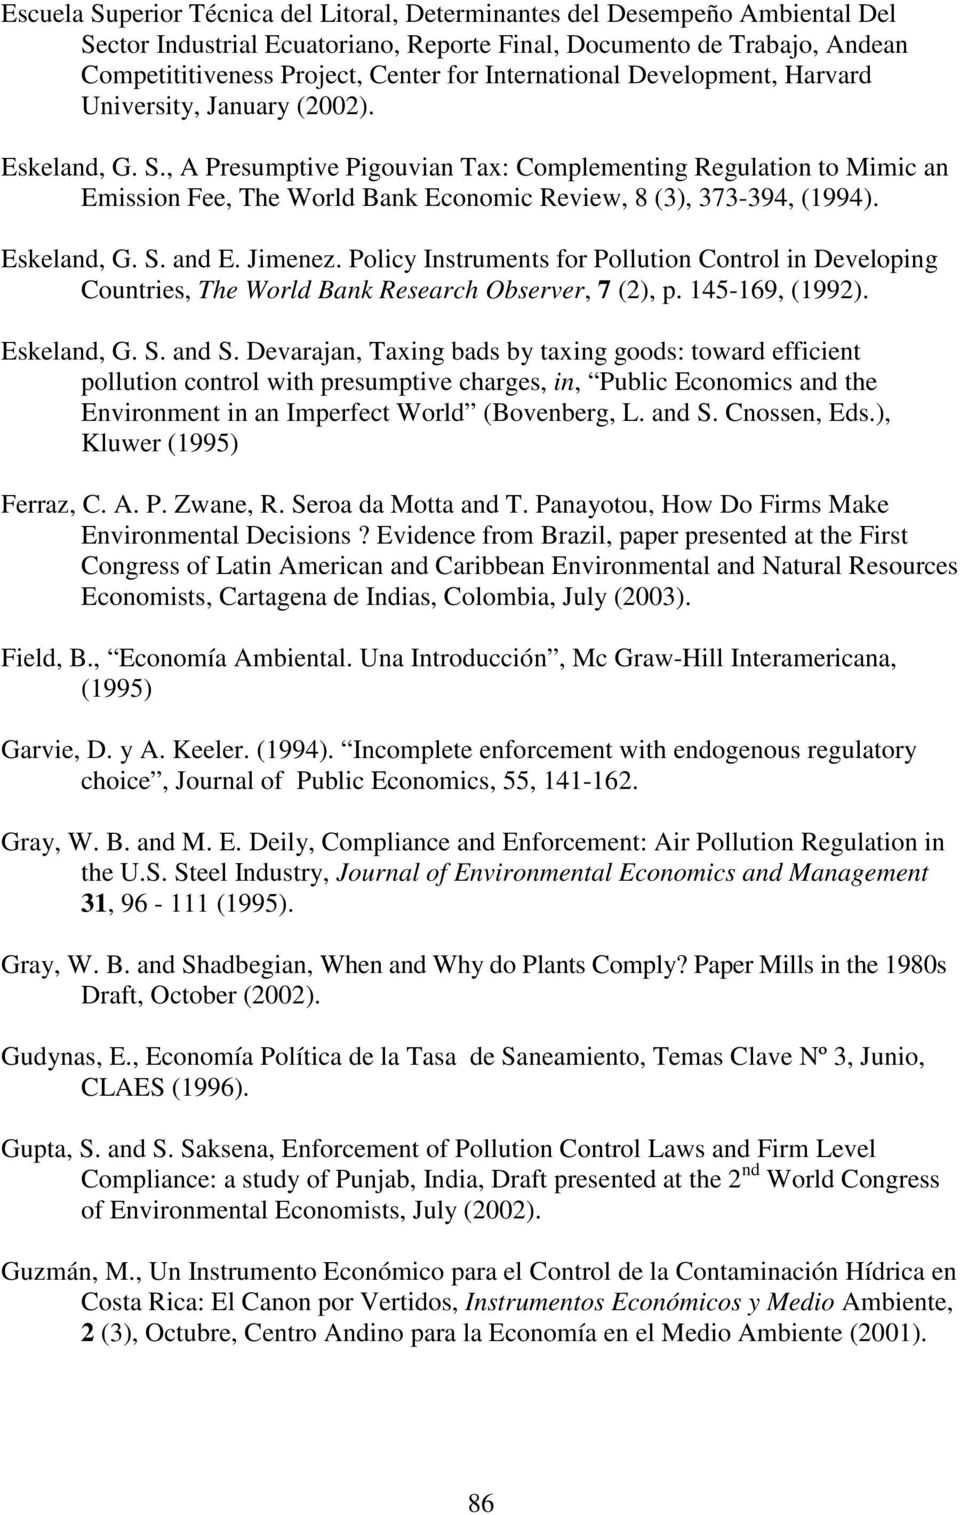 , A Presumptive Pigouvian Tax: Complementing Regulation to Mimic an Emission Fee, The World Bank Economic Review, 8 (3), 373-394, (1994). Eskeland, G. S. and E. Jimenez.